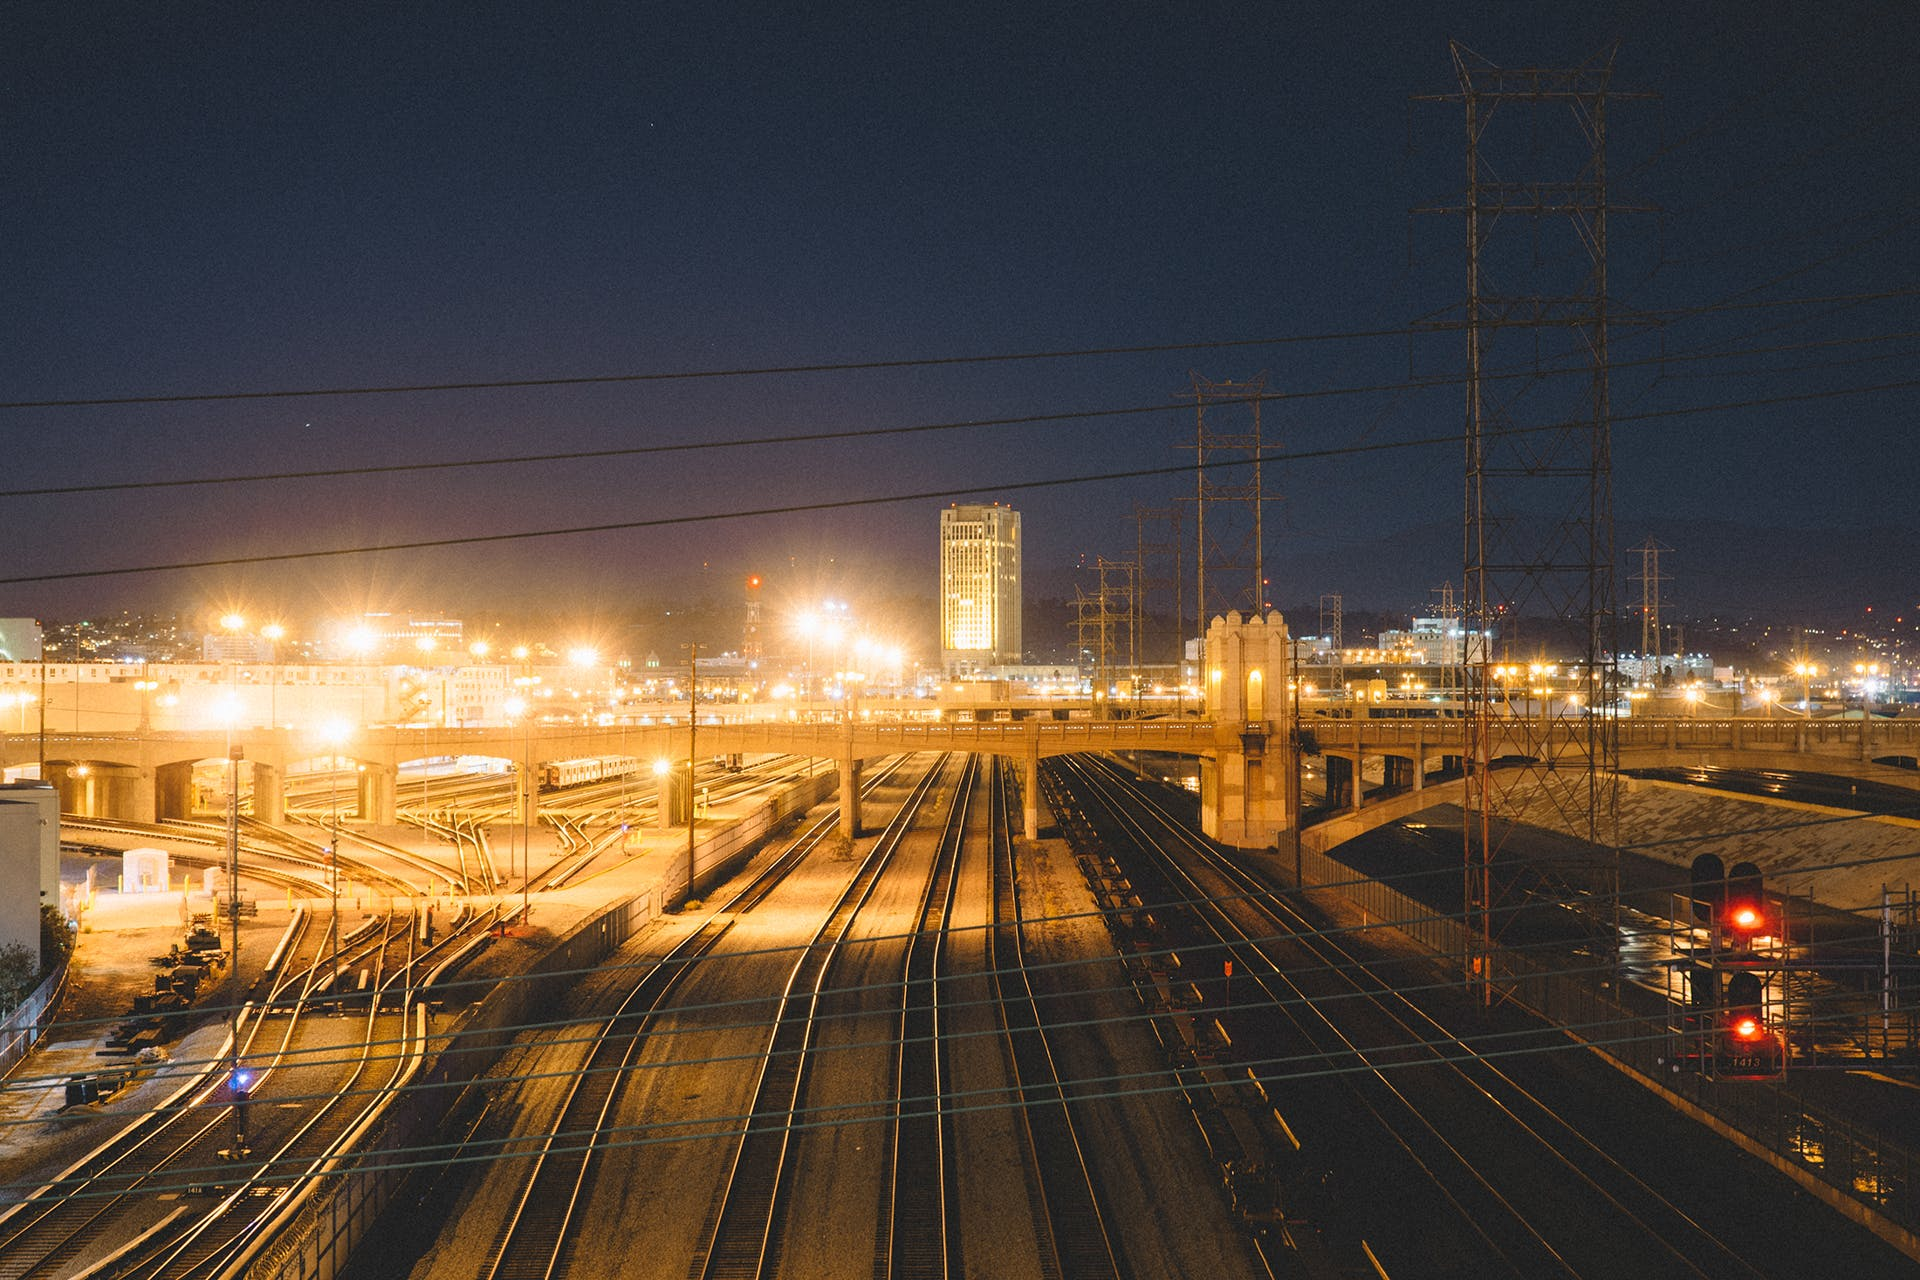 industry, night, railroads